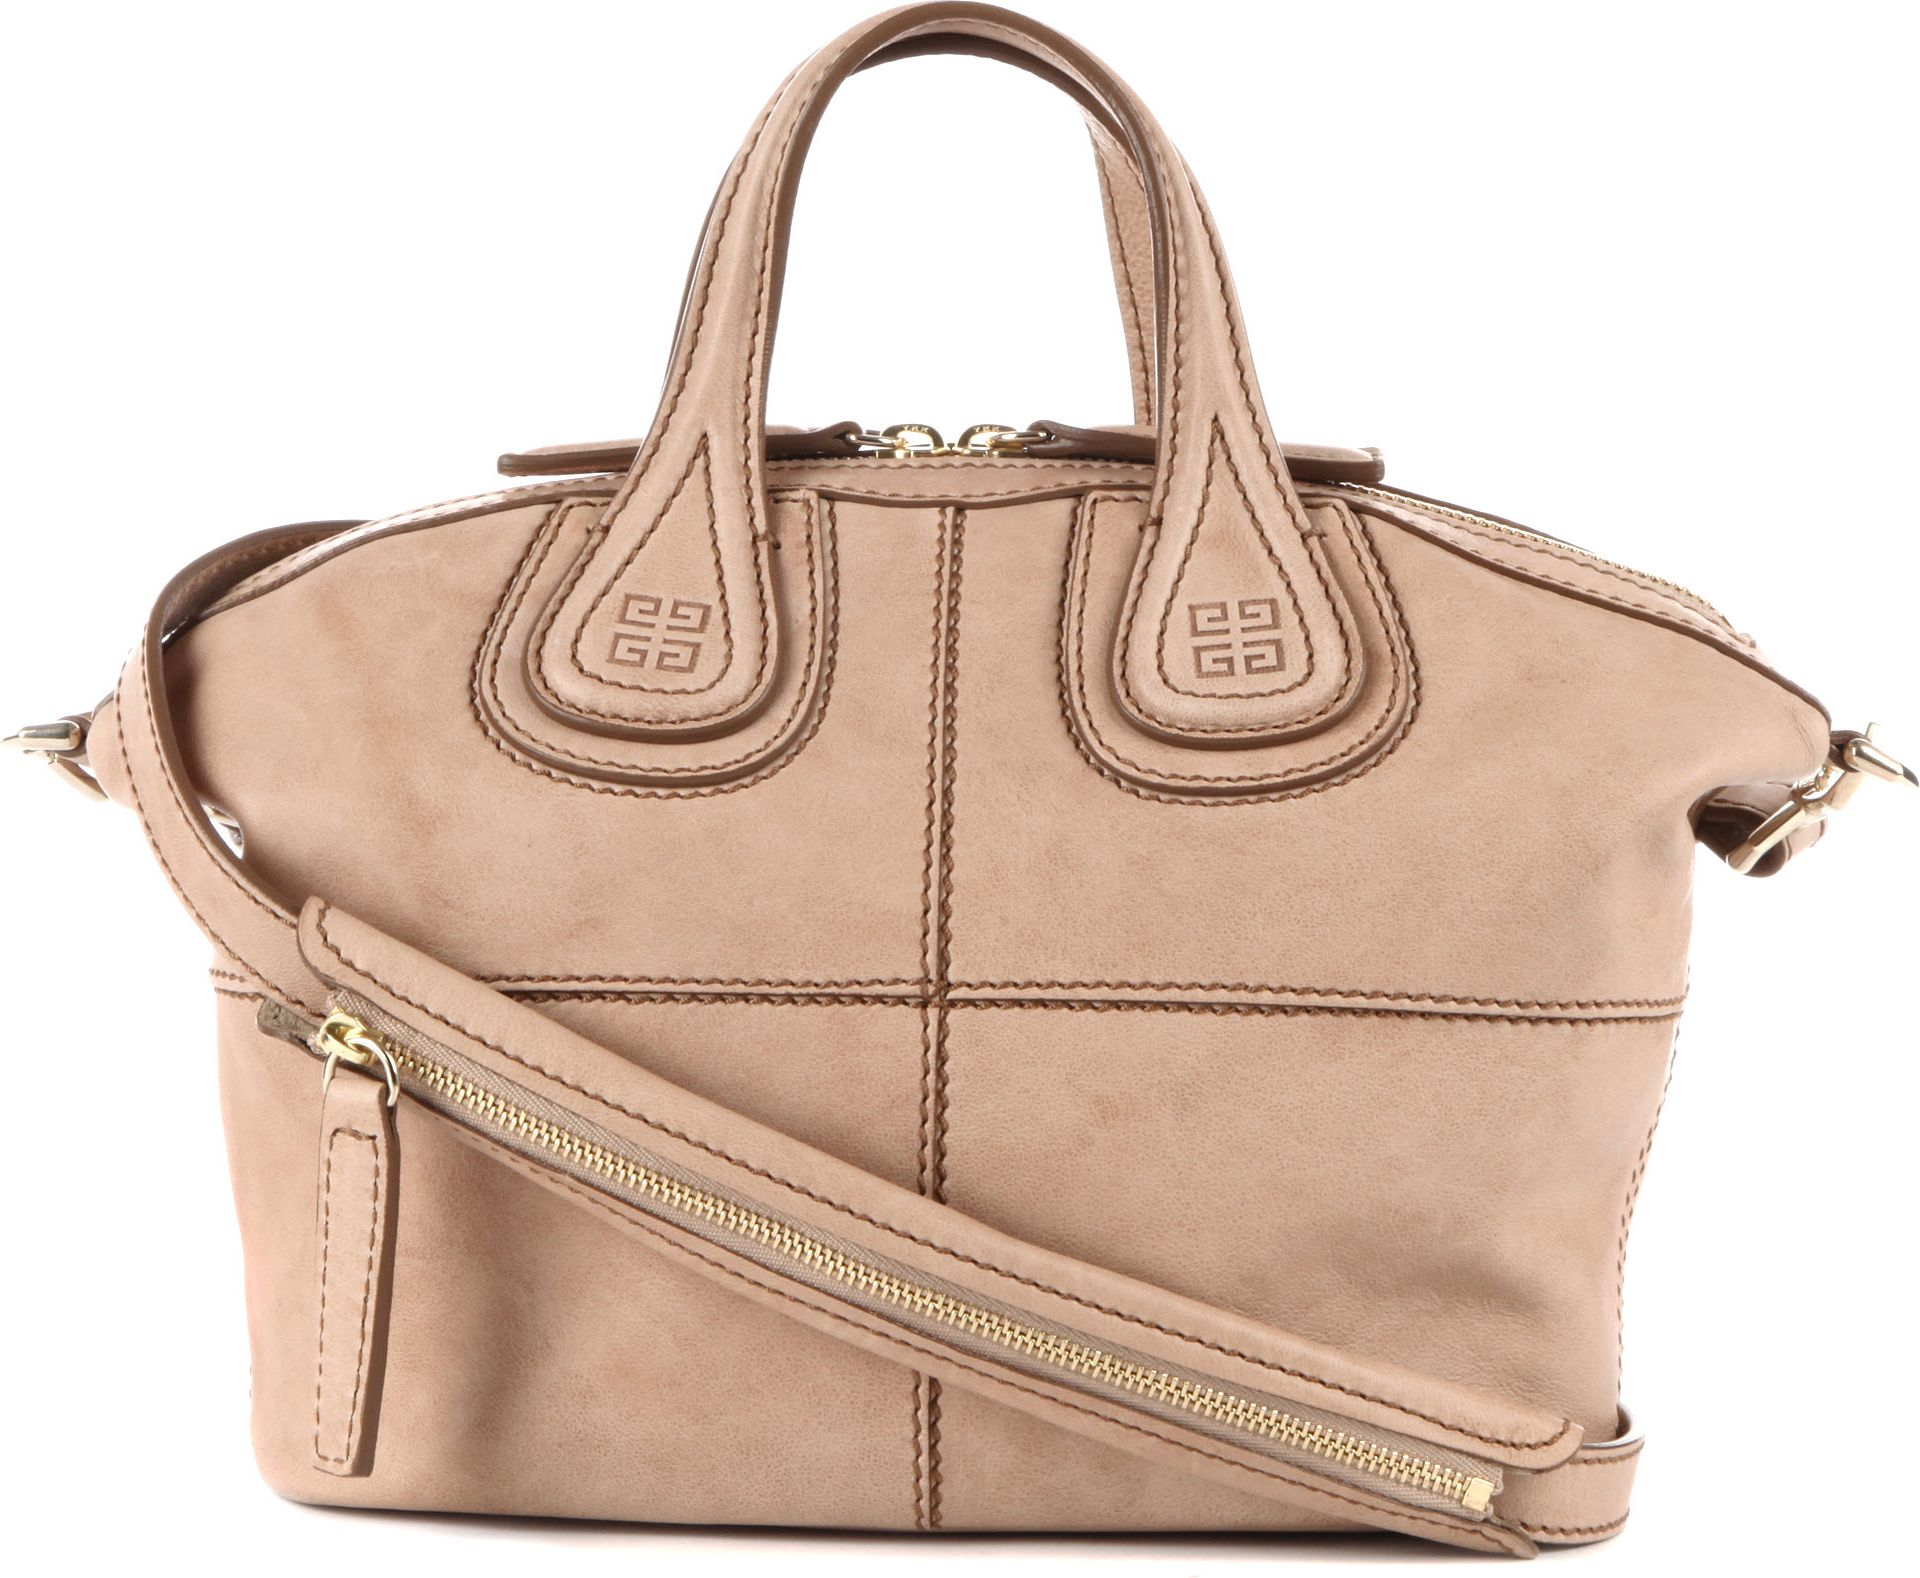 Chloe Womens Bags Selfridges Shop Online ...